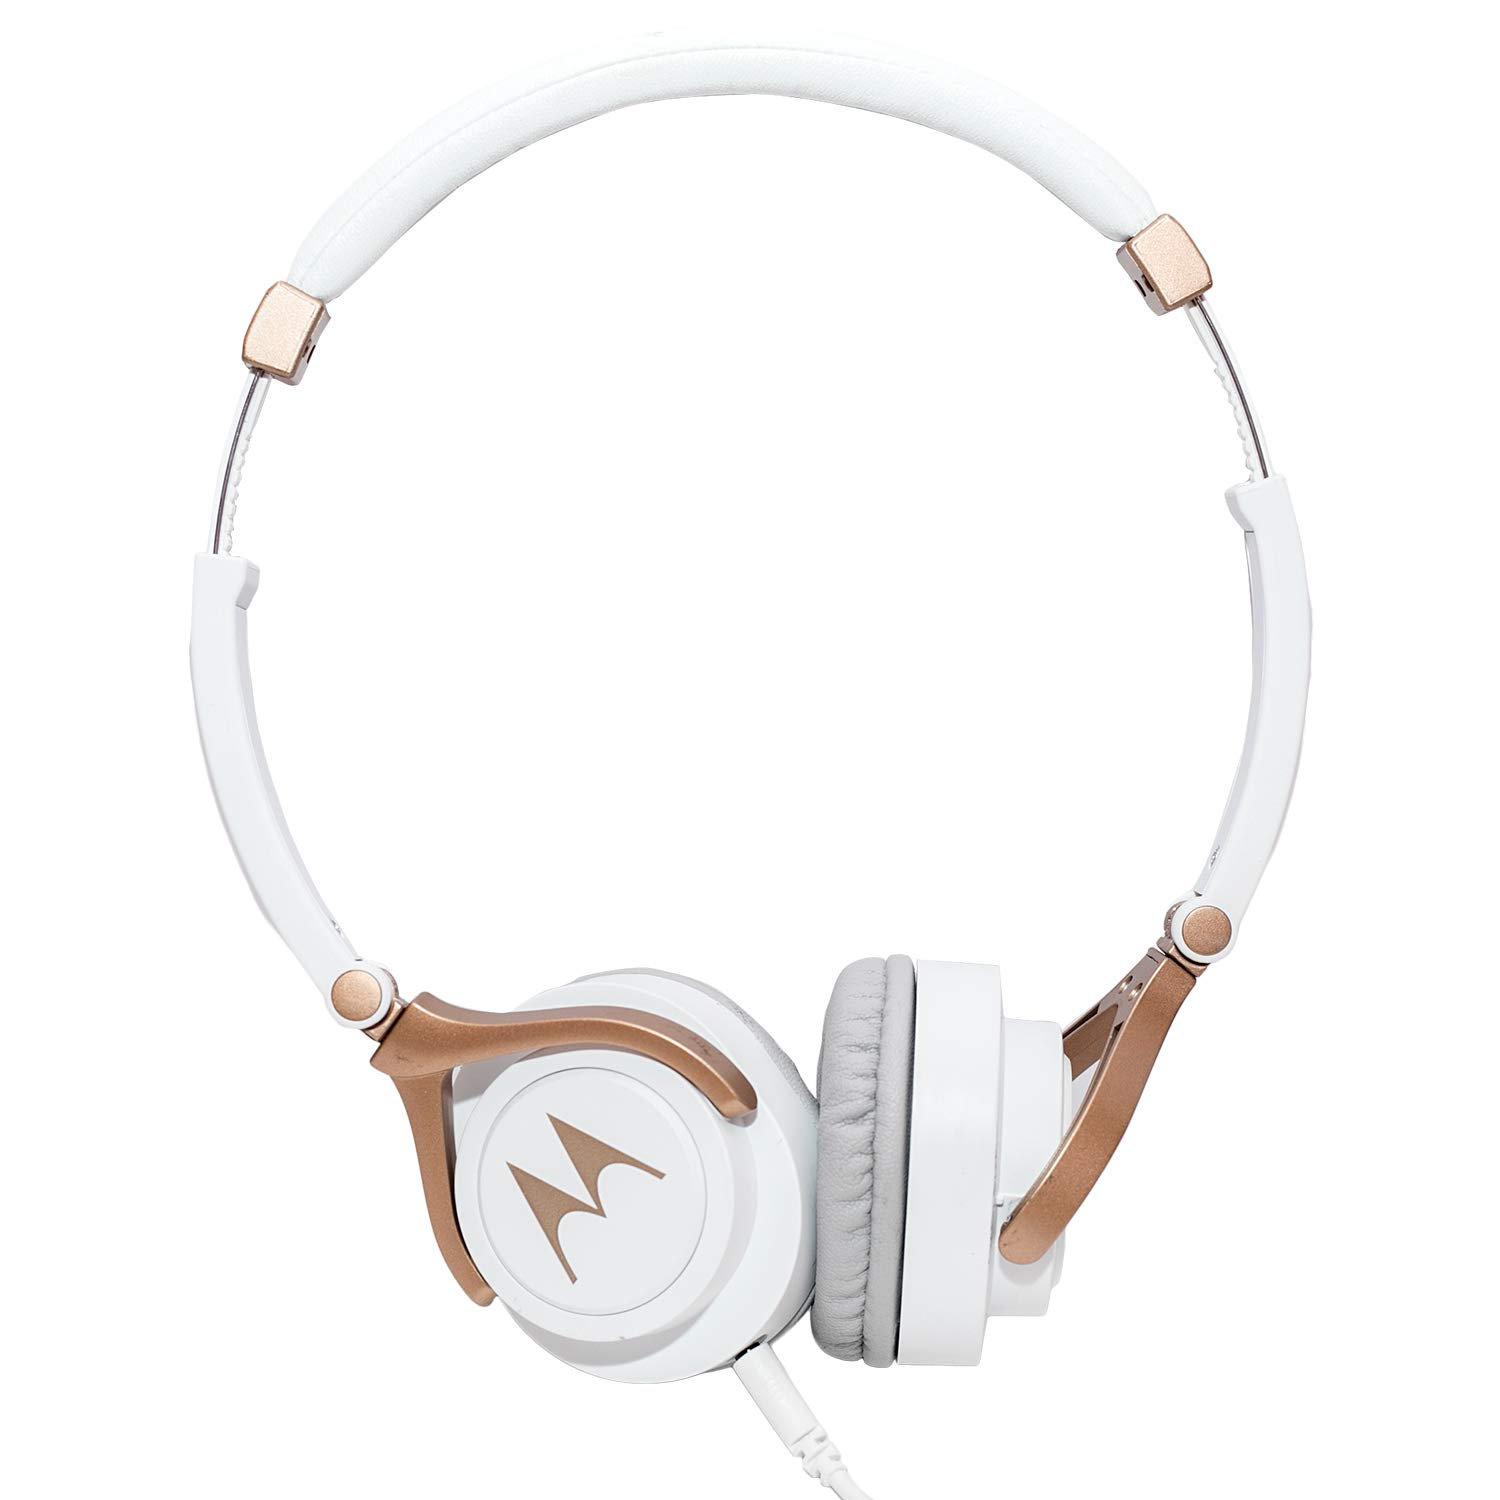 Motorola Pulse 3 Wired Headphones (White and Gold)